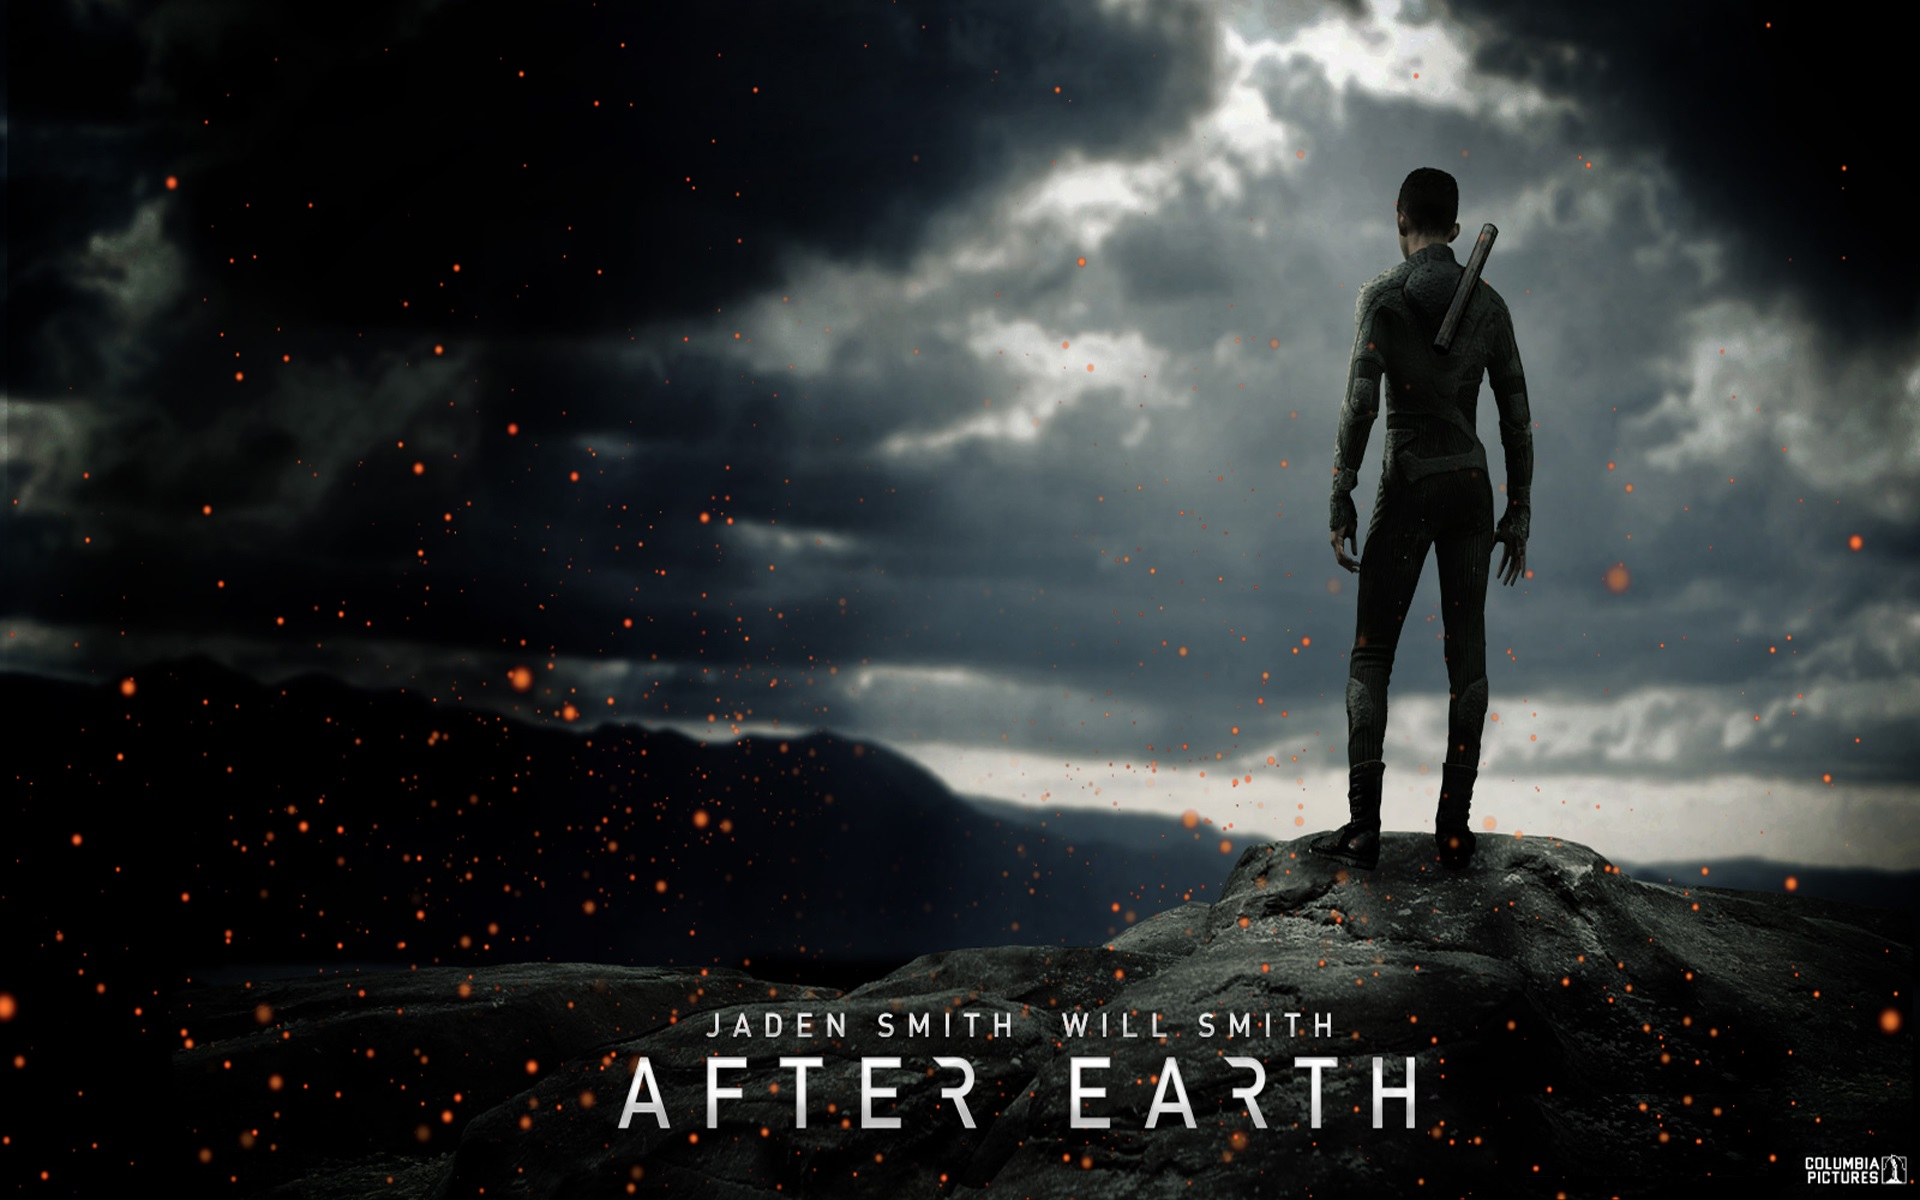 After Earth Cov HD Wallpaper Background Images 1920x1200